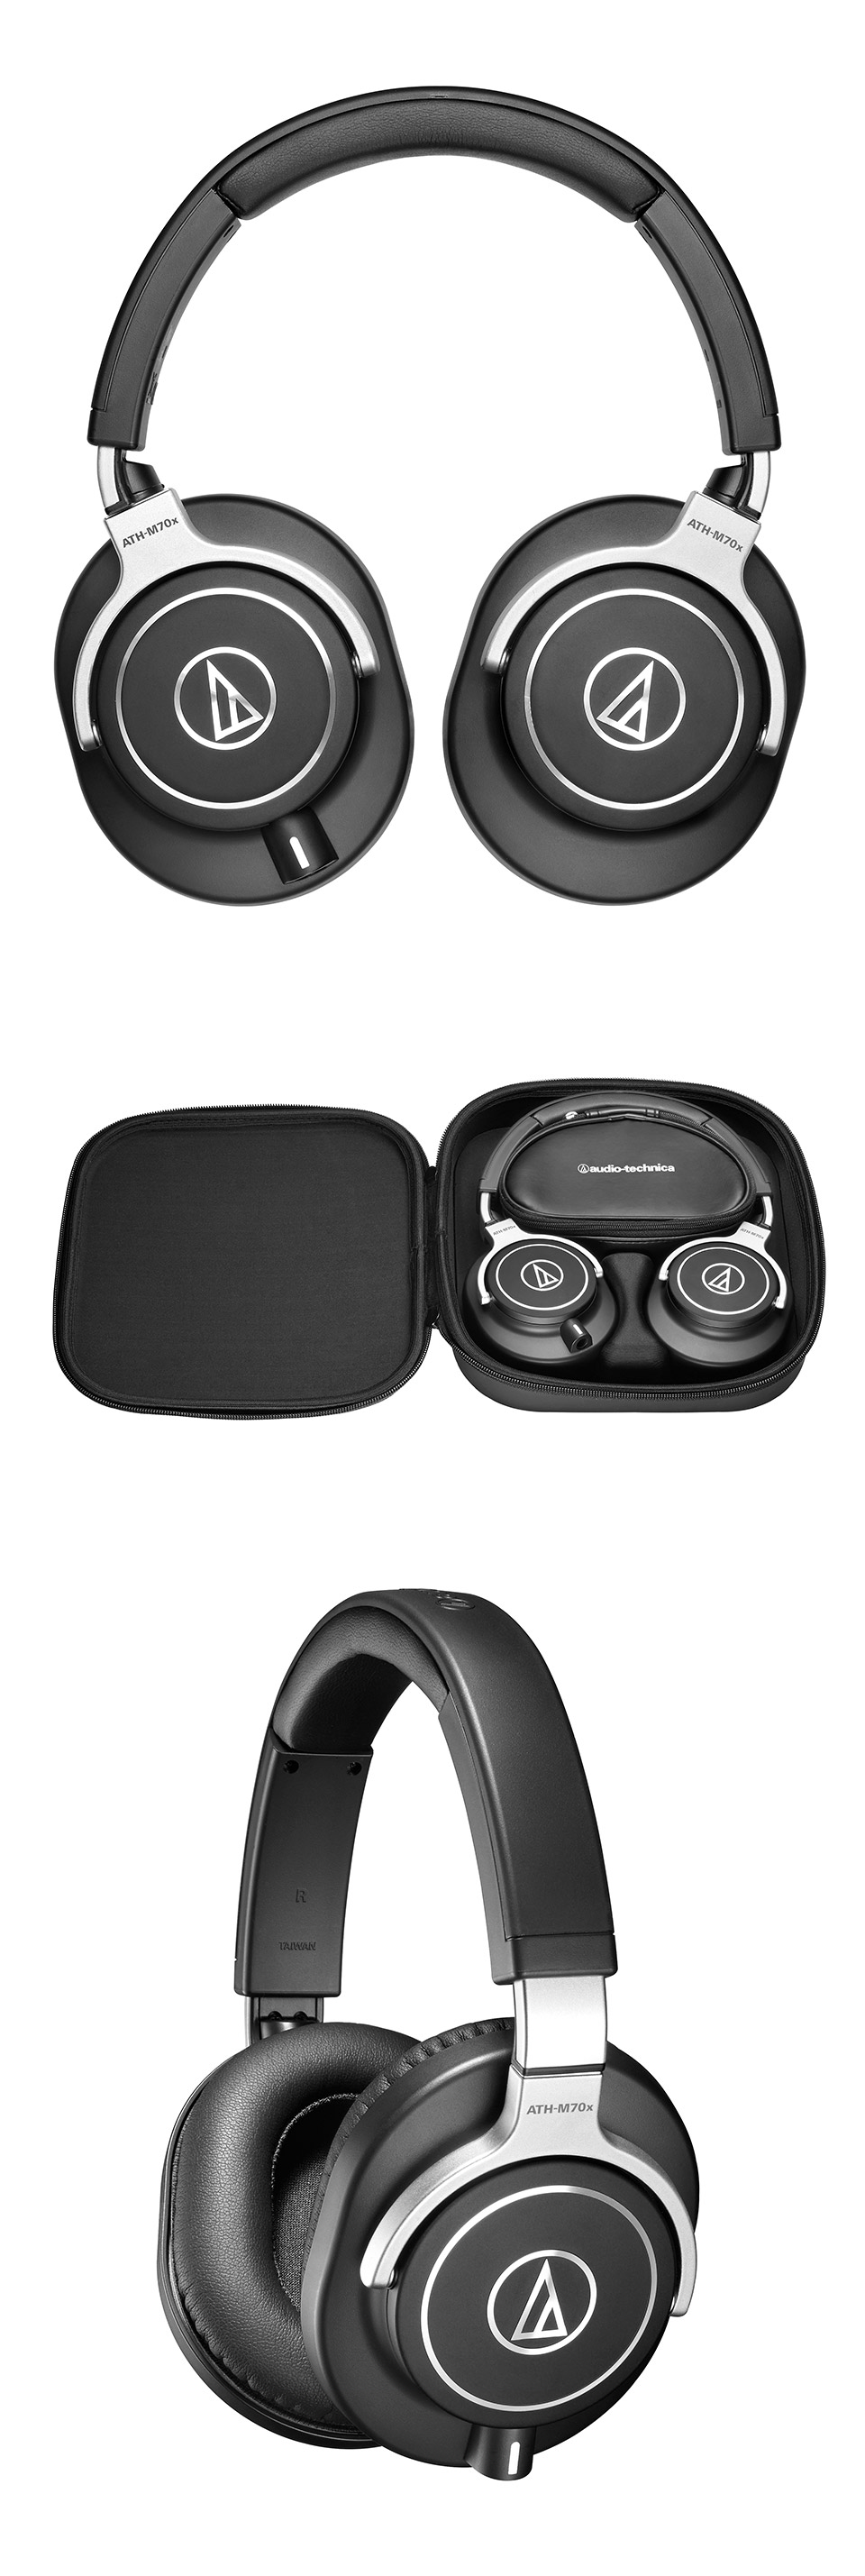 audio technica ath m70x professional monitor headphones ath m70x pc case gear. Black Bedroom Furniture Sets. Home Design Ideas